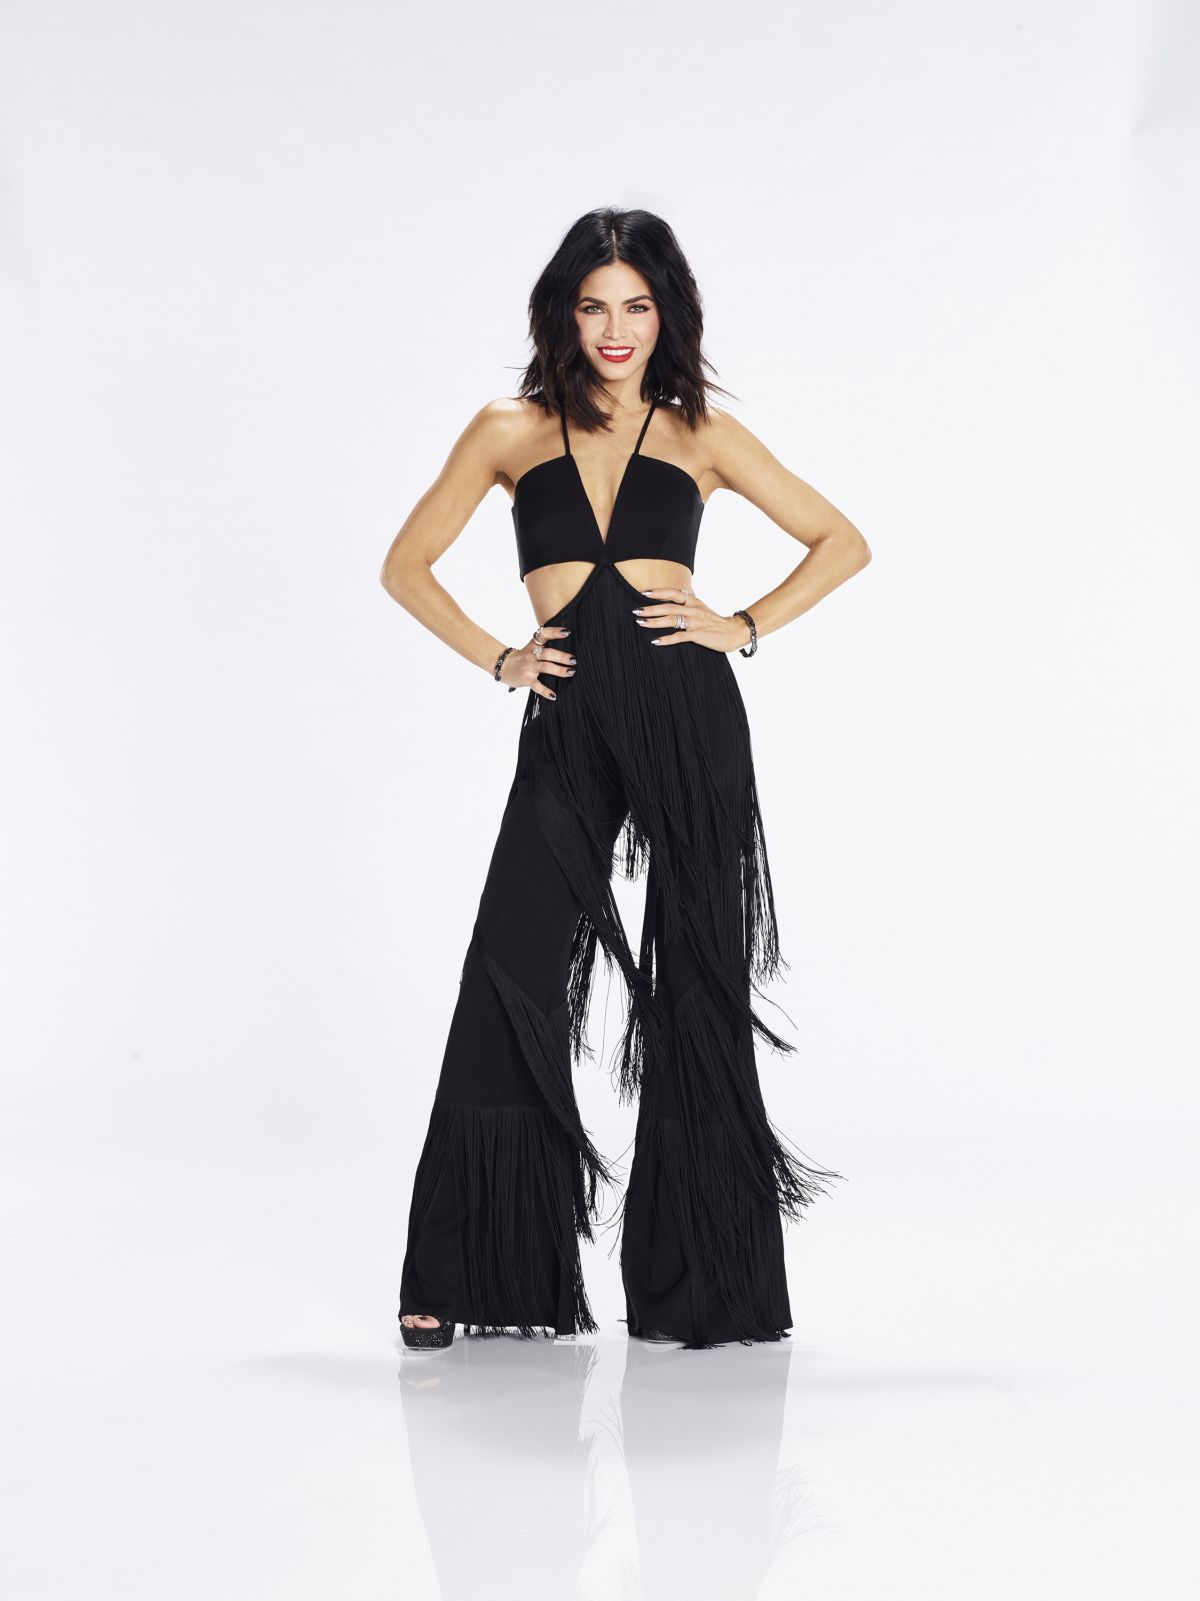 JENNA DEWAN - World of Dance, Season Pne Promos